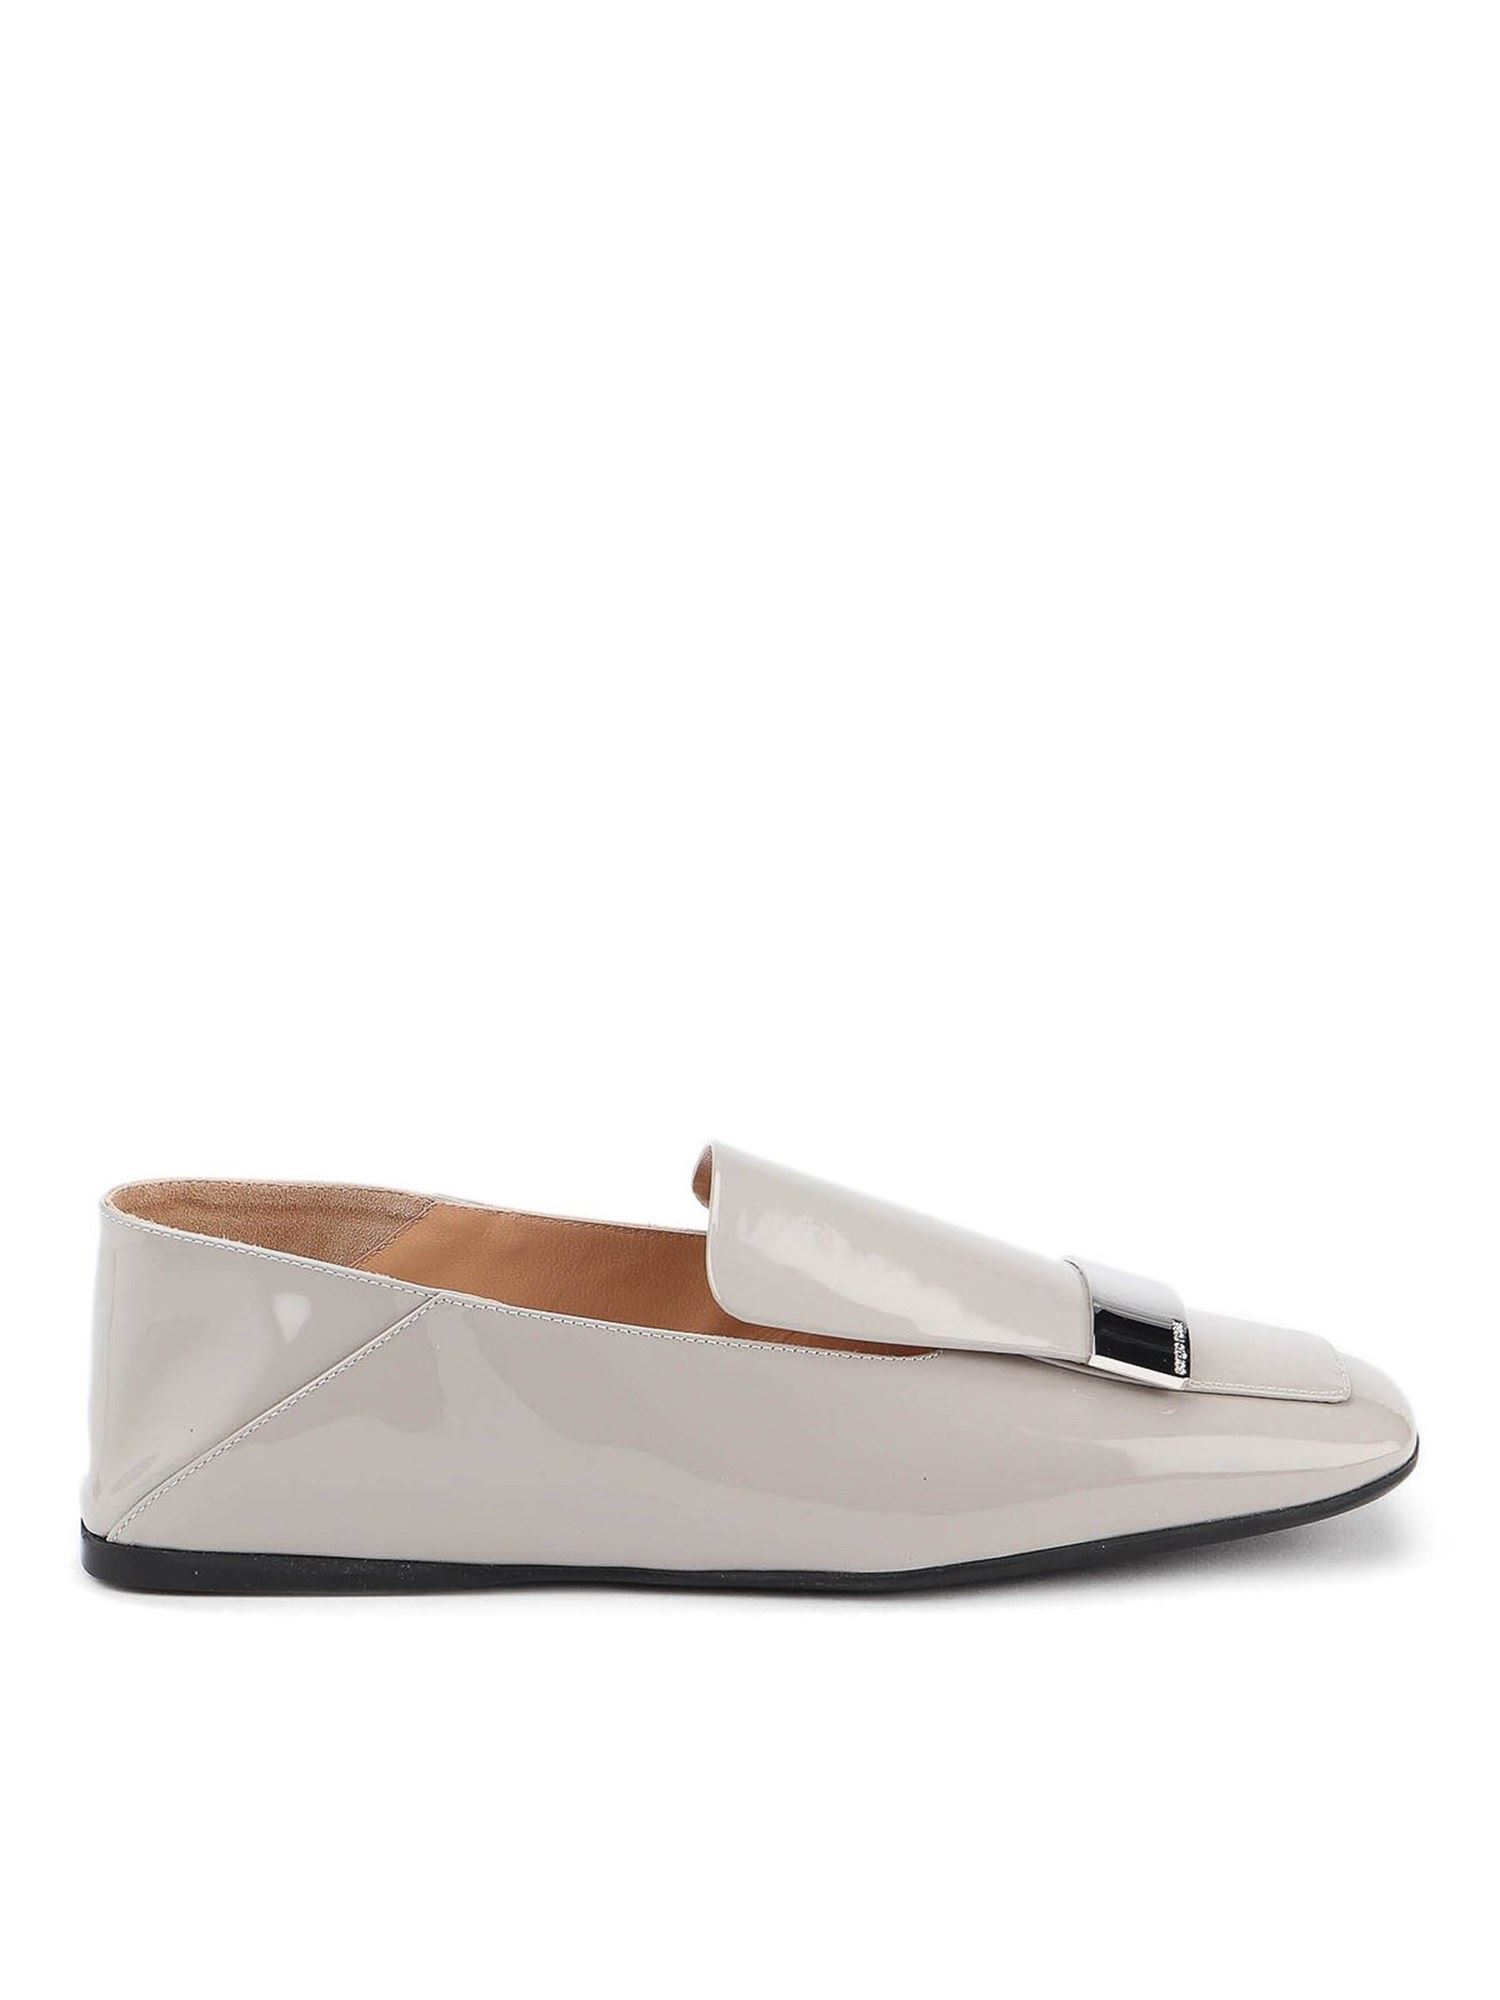 Sergio Rossi PATENT LEATHER SLIPPERS IN GREY